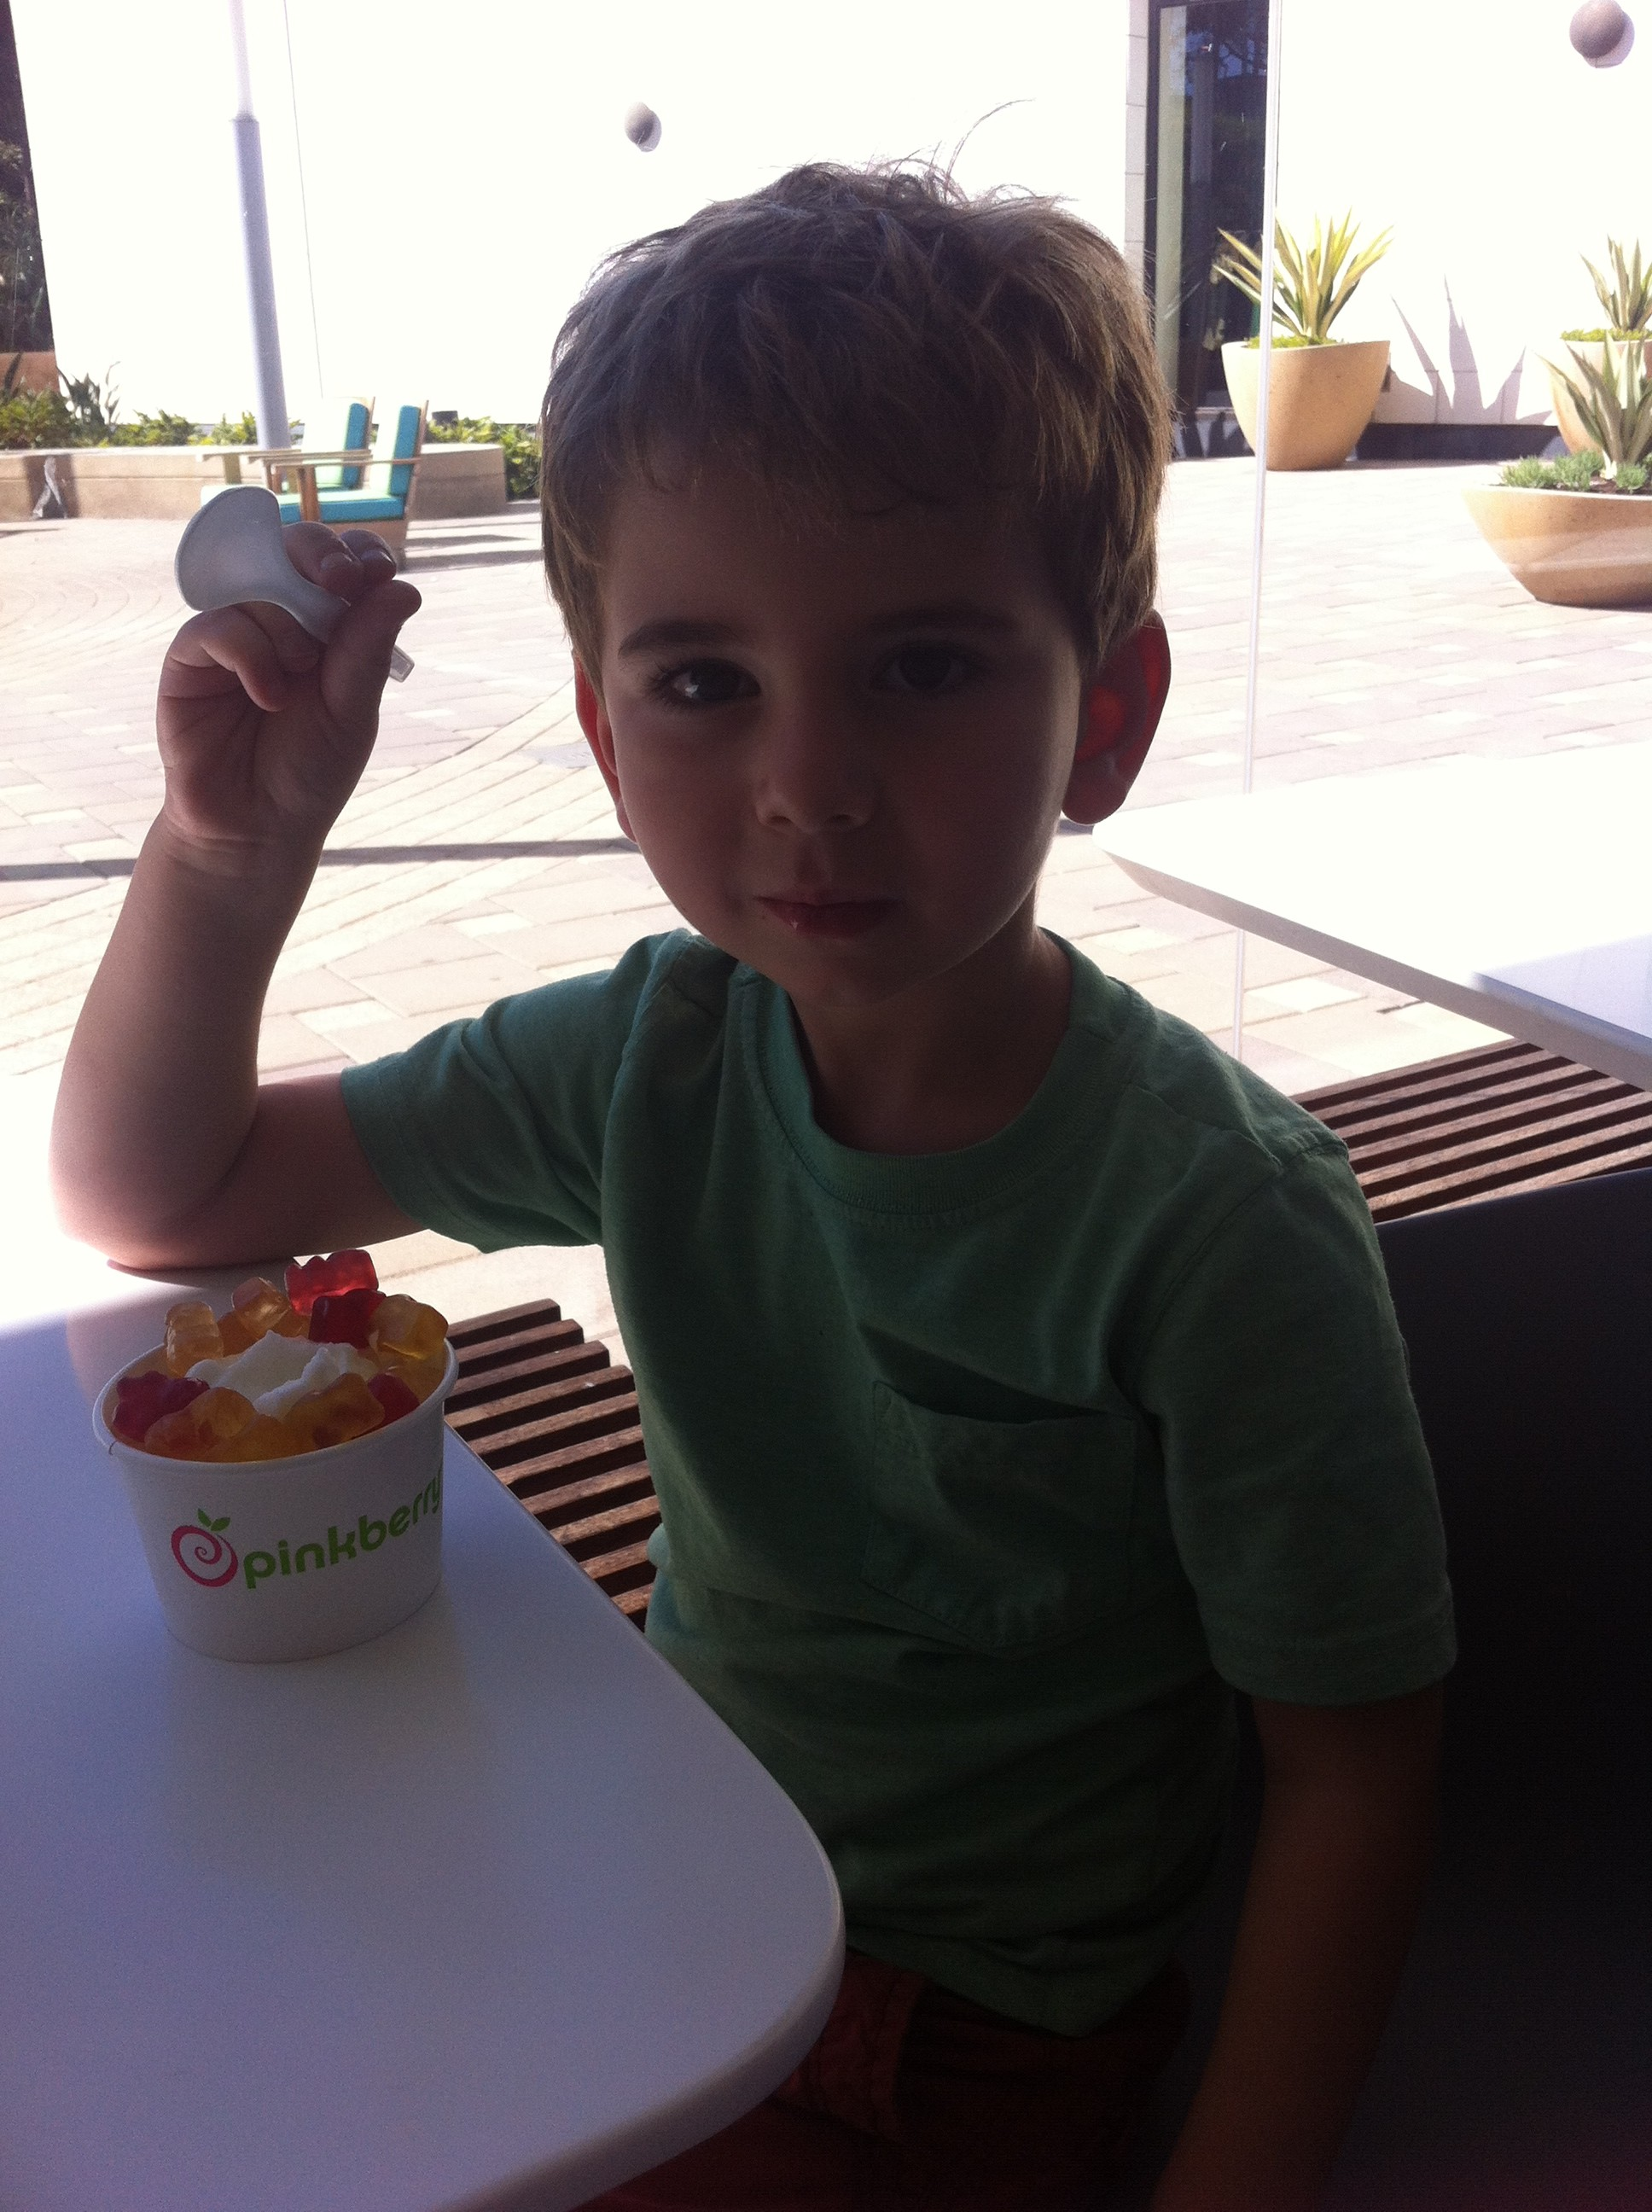 JOnah pinkberry sept 2013